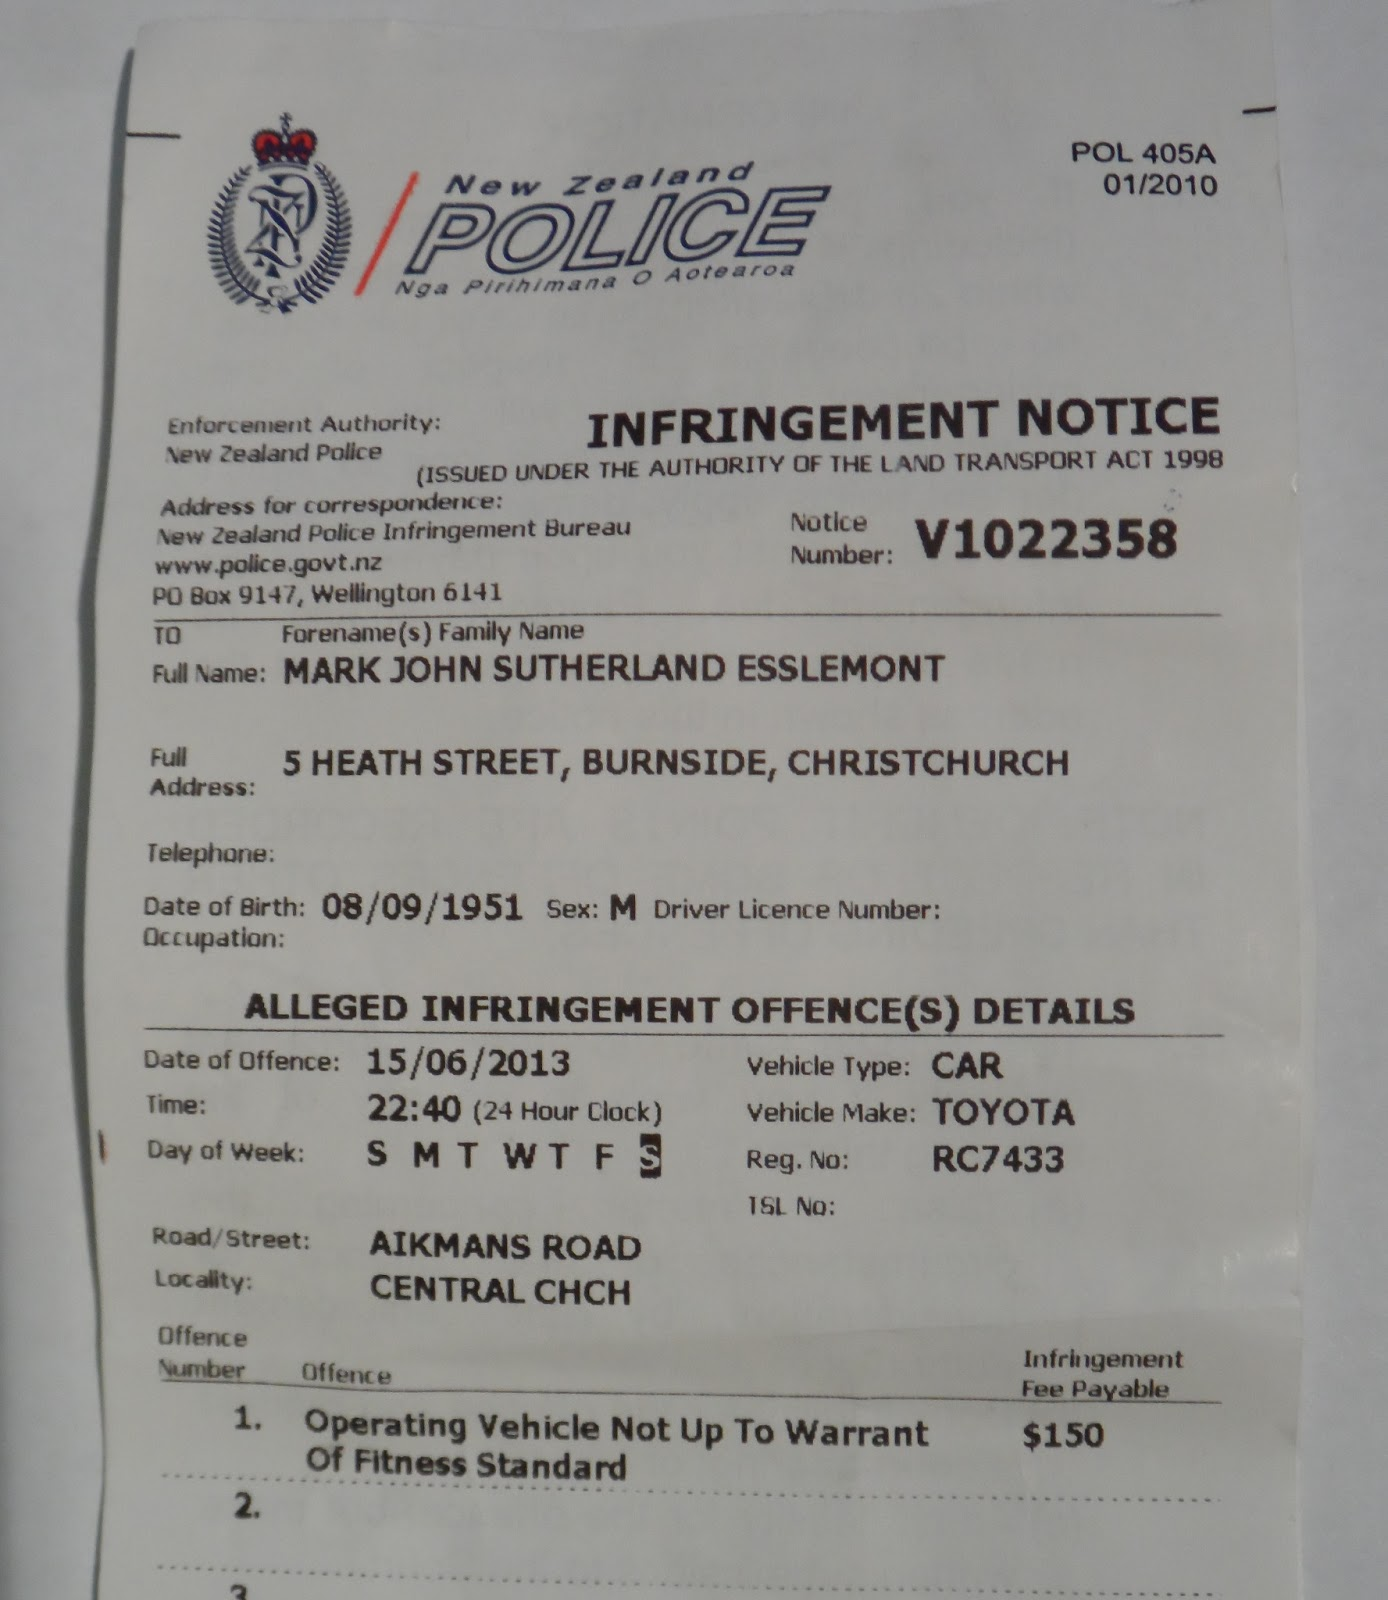 Woza wanderer christchurch police state post quake bleus 150613 nz police infringement notice toyota corolla malvernweather Image collections